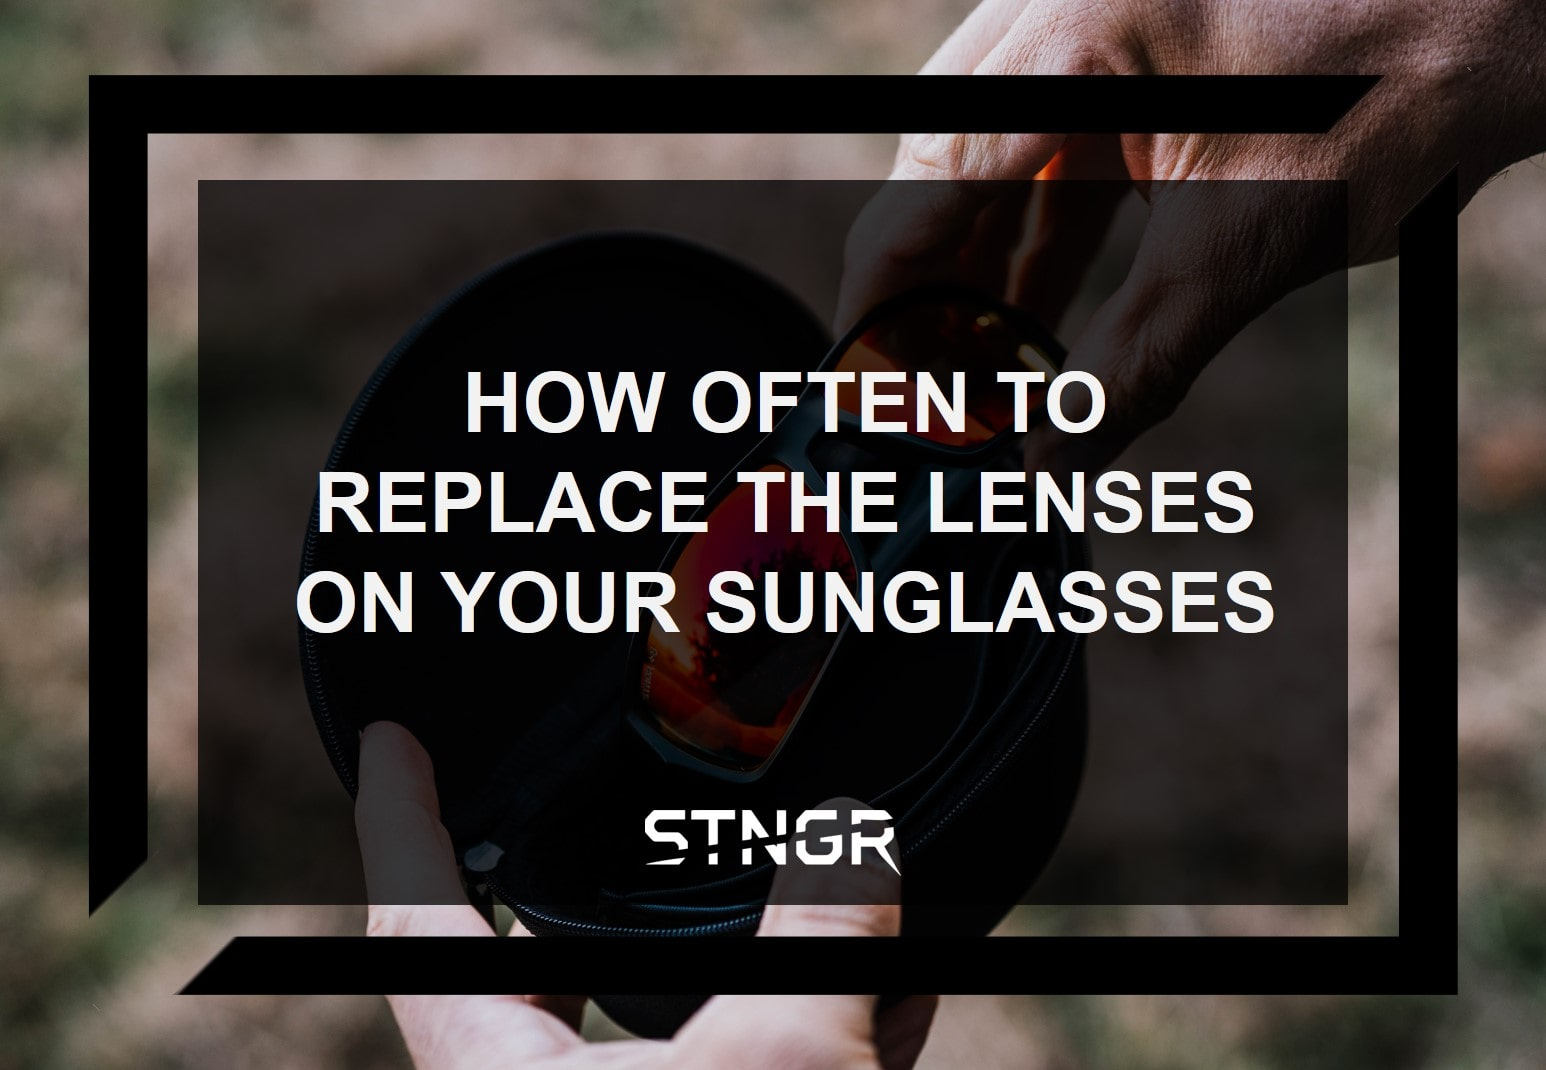 How Often to Replace the Lenses on Your Sunglasses